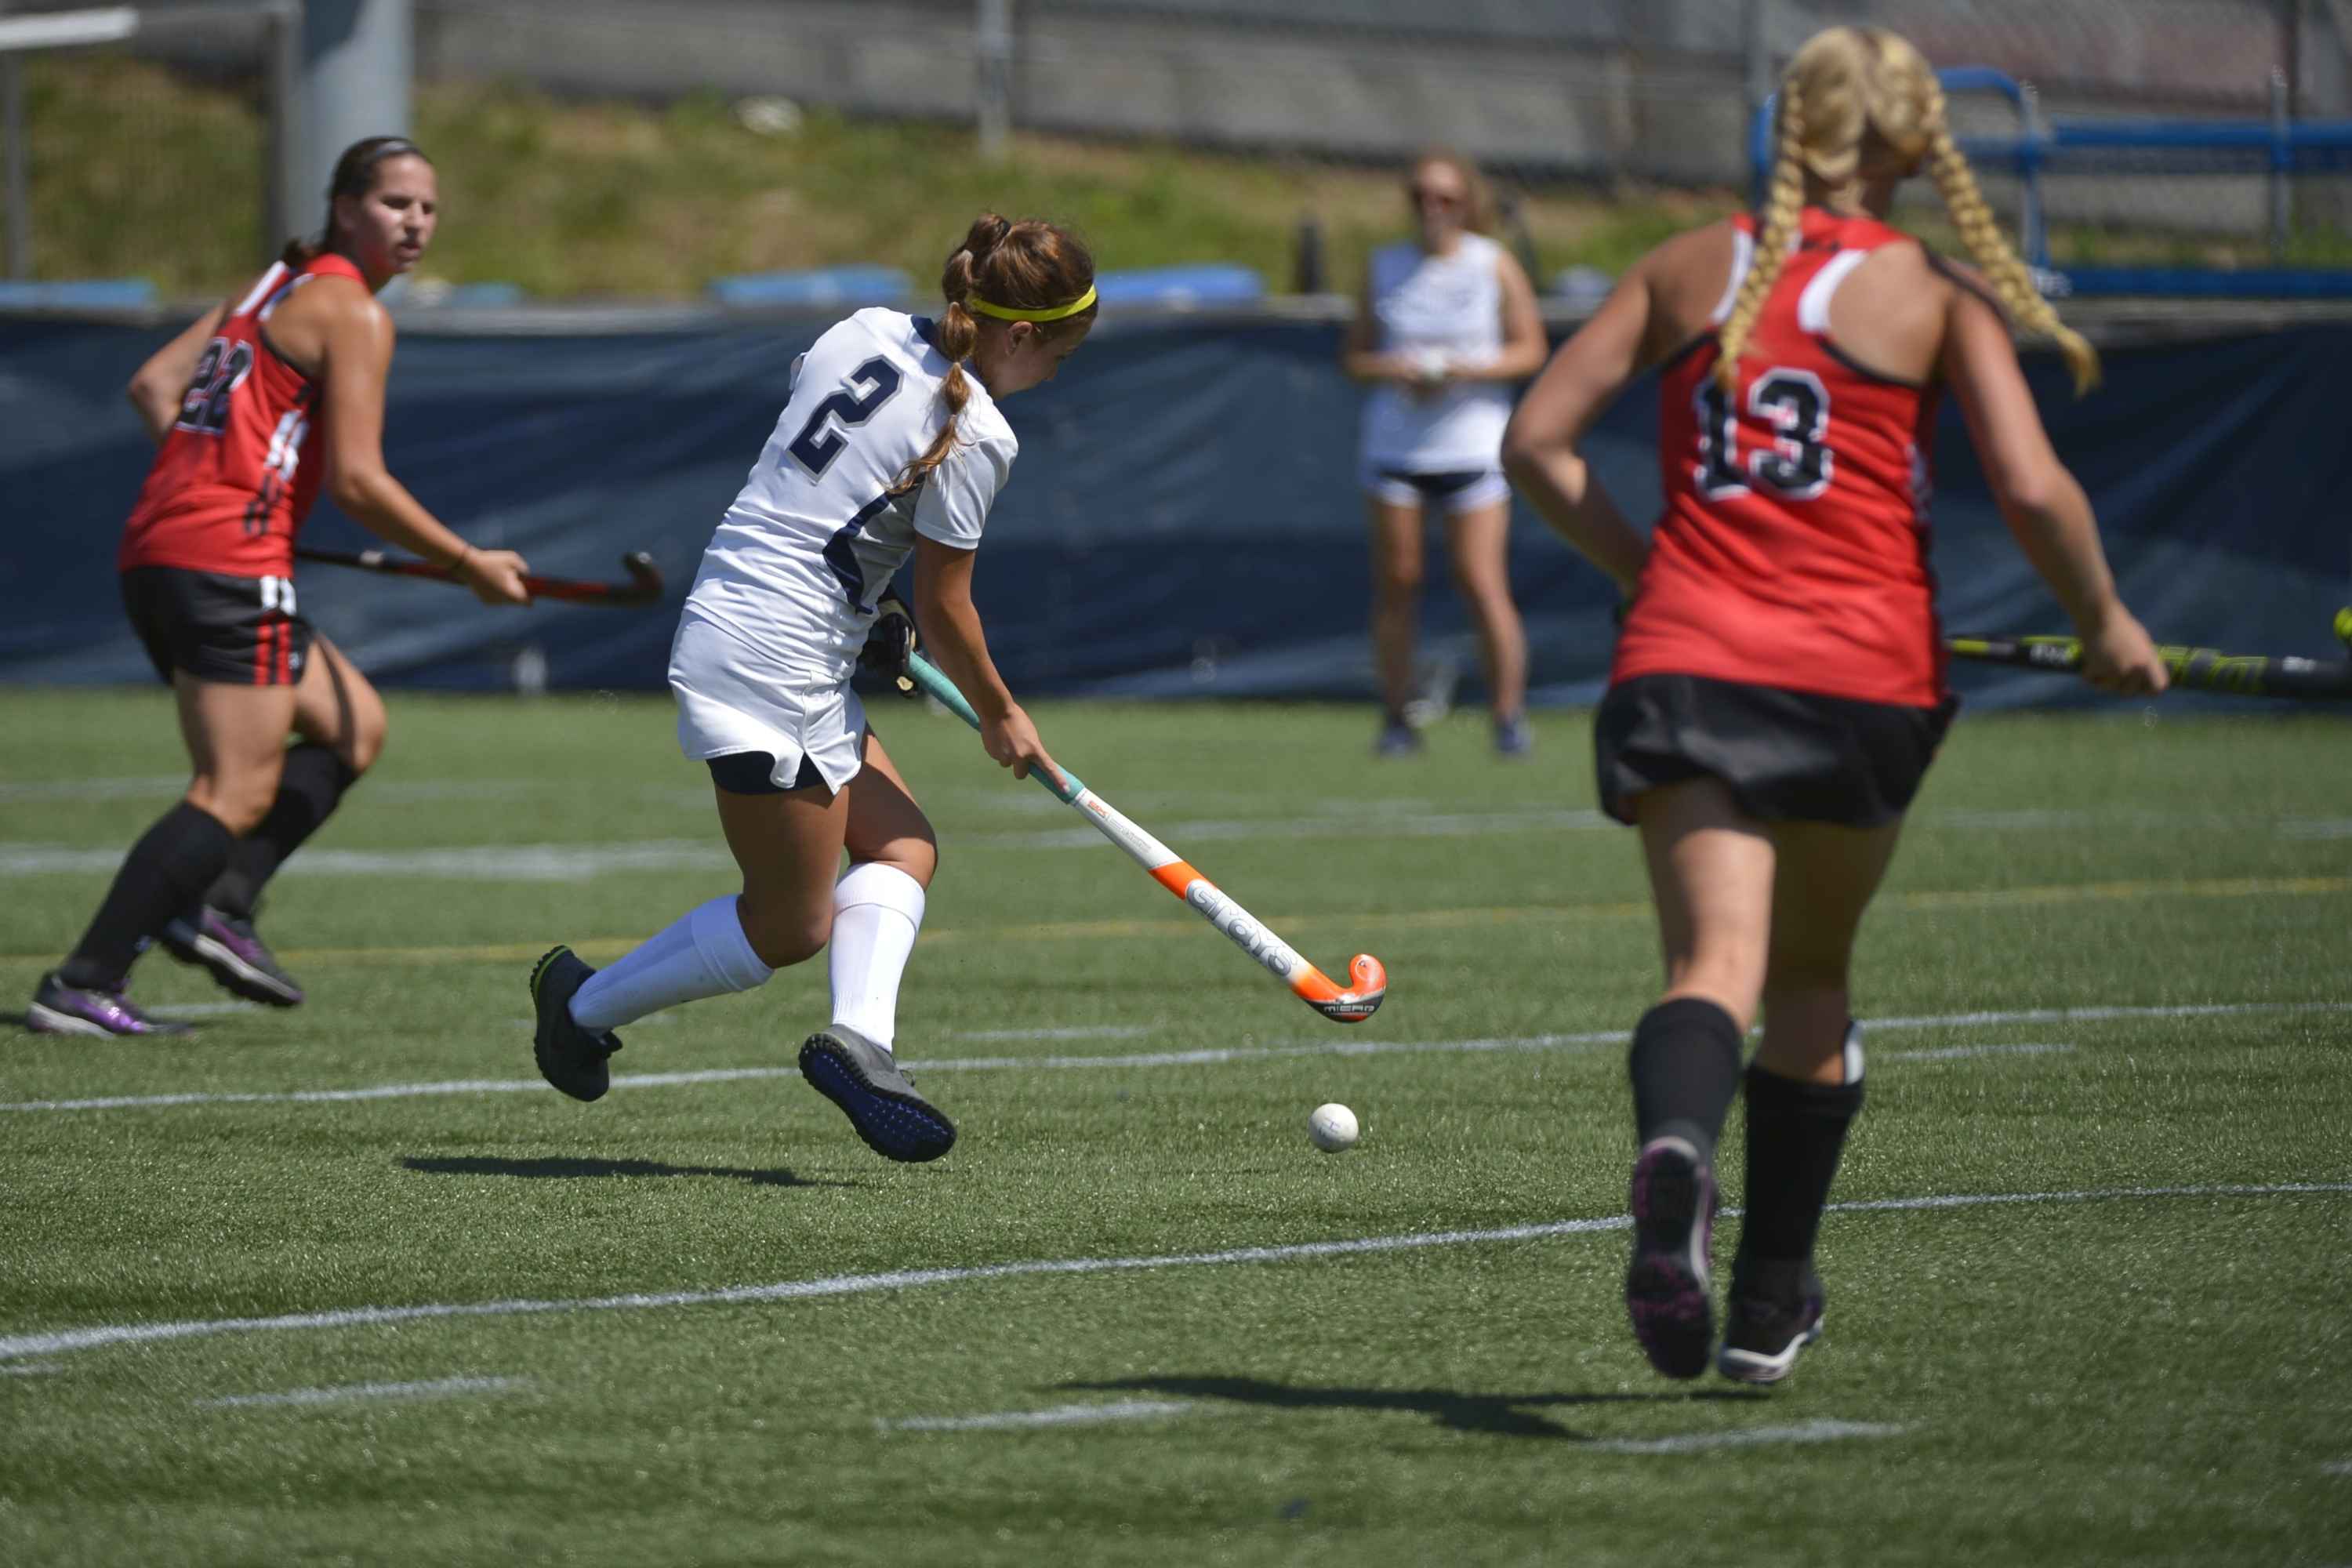 Sophomore Megan Parsons  secured her first goal of the season off an assistnt from Devin Holmes.